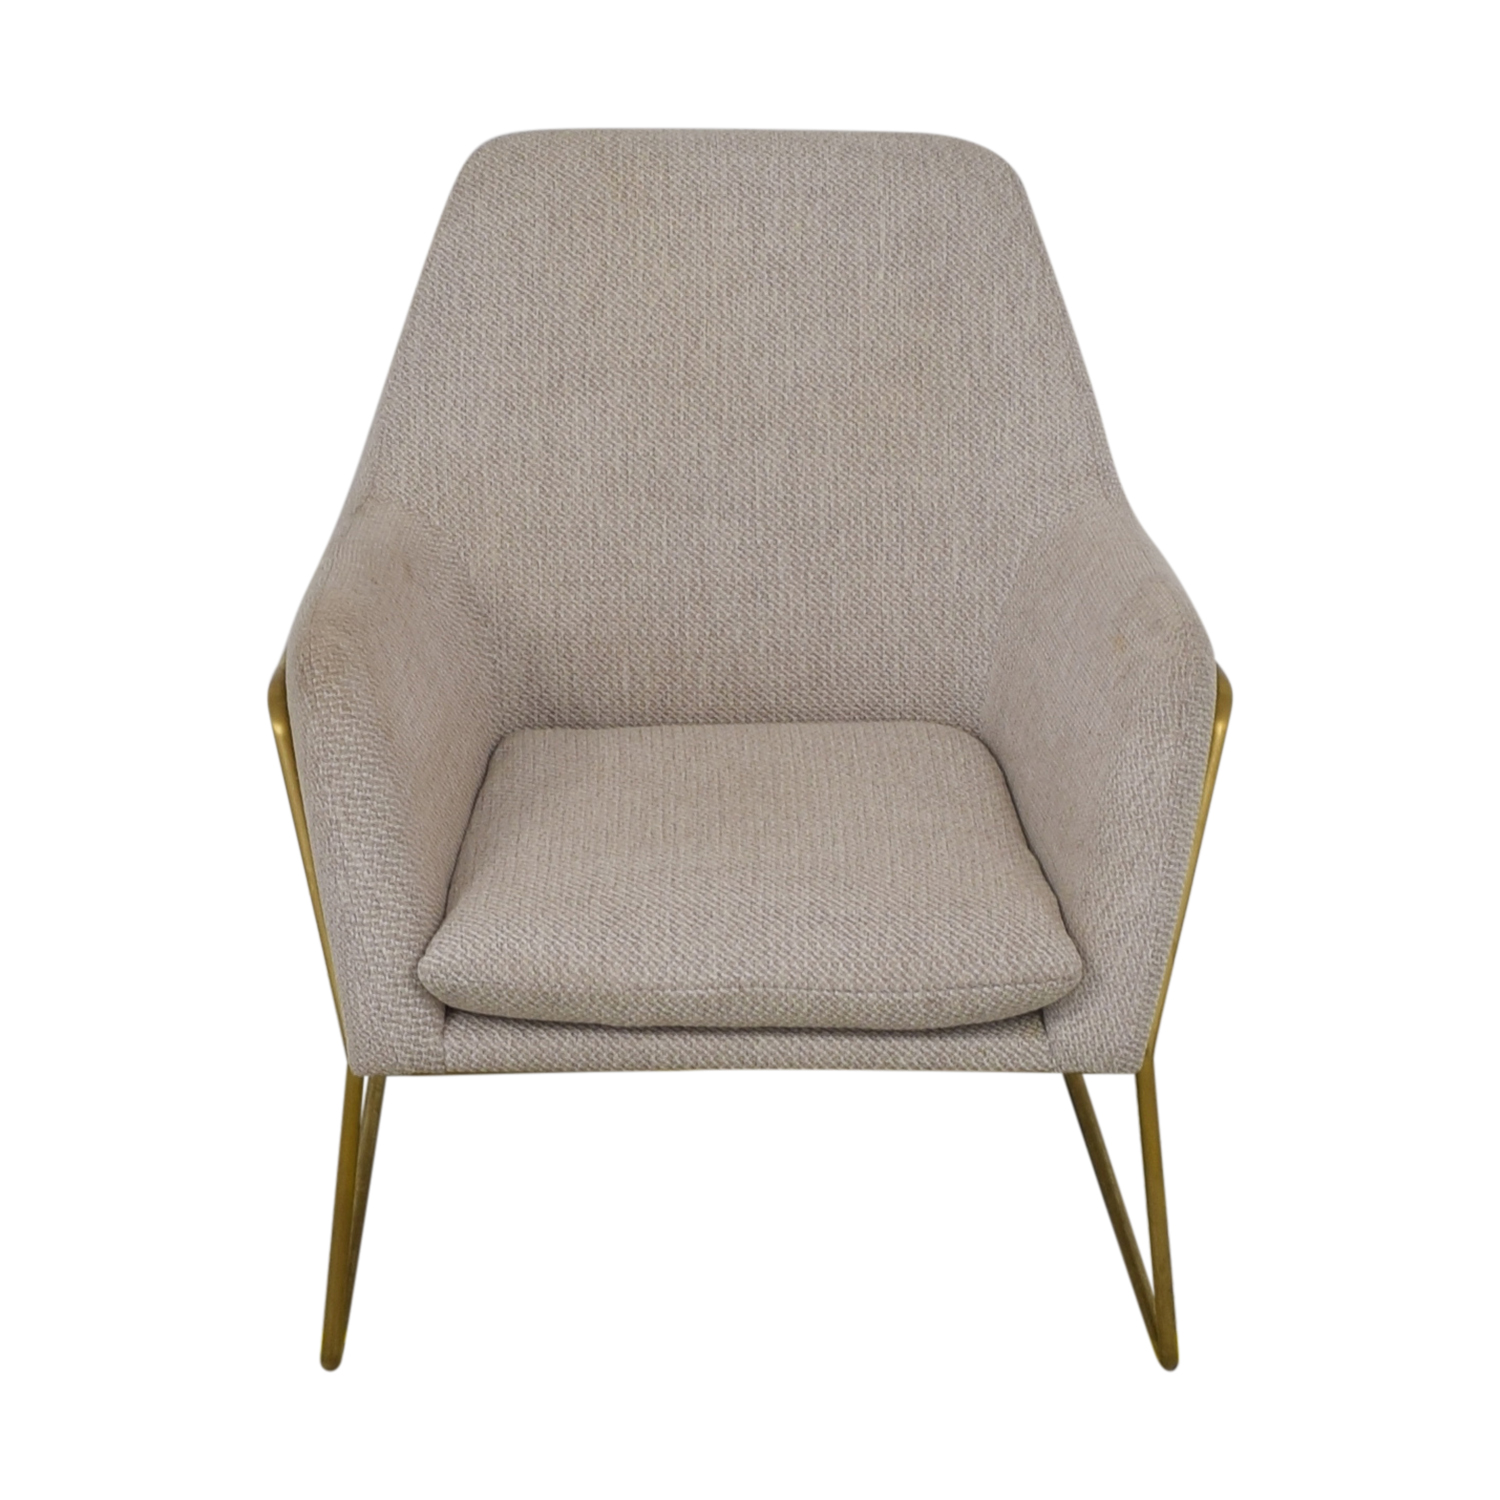 Article Article Forma Chair on sale